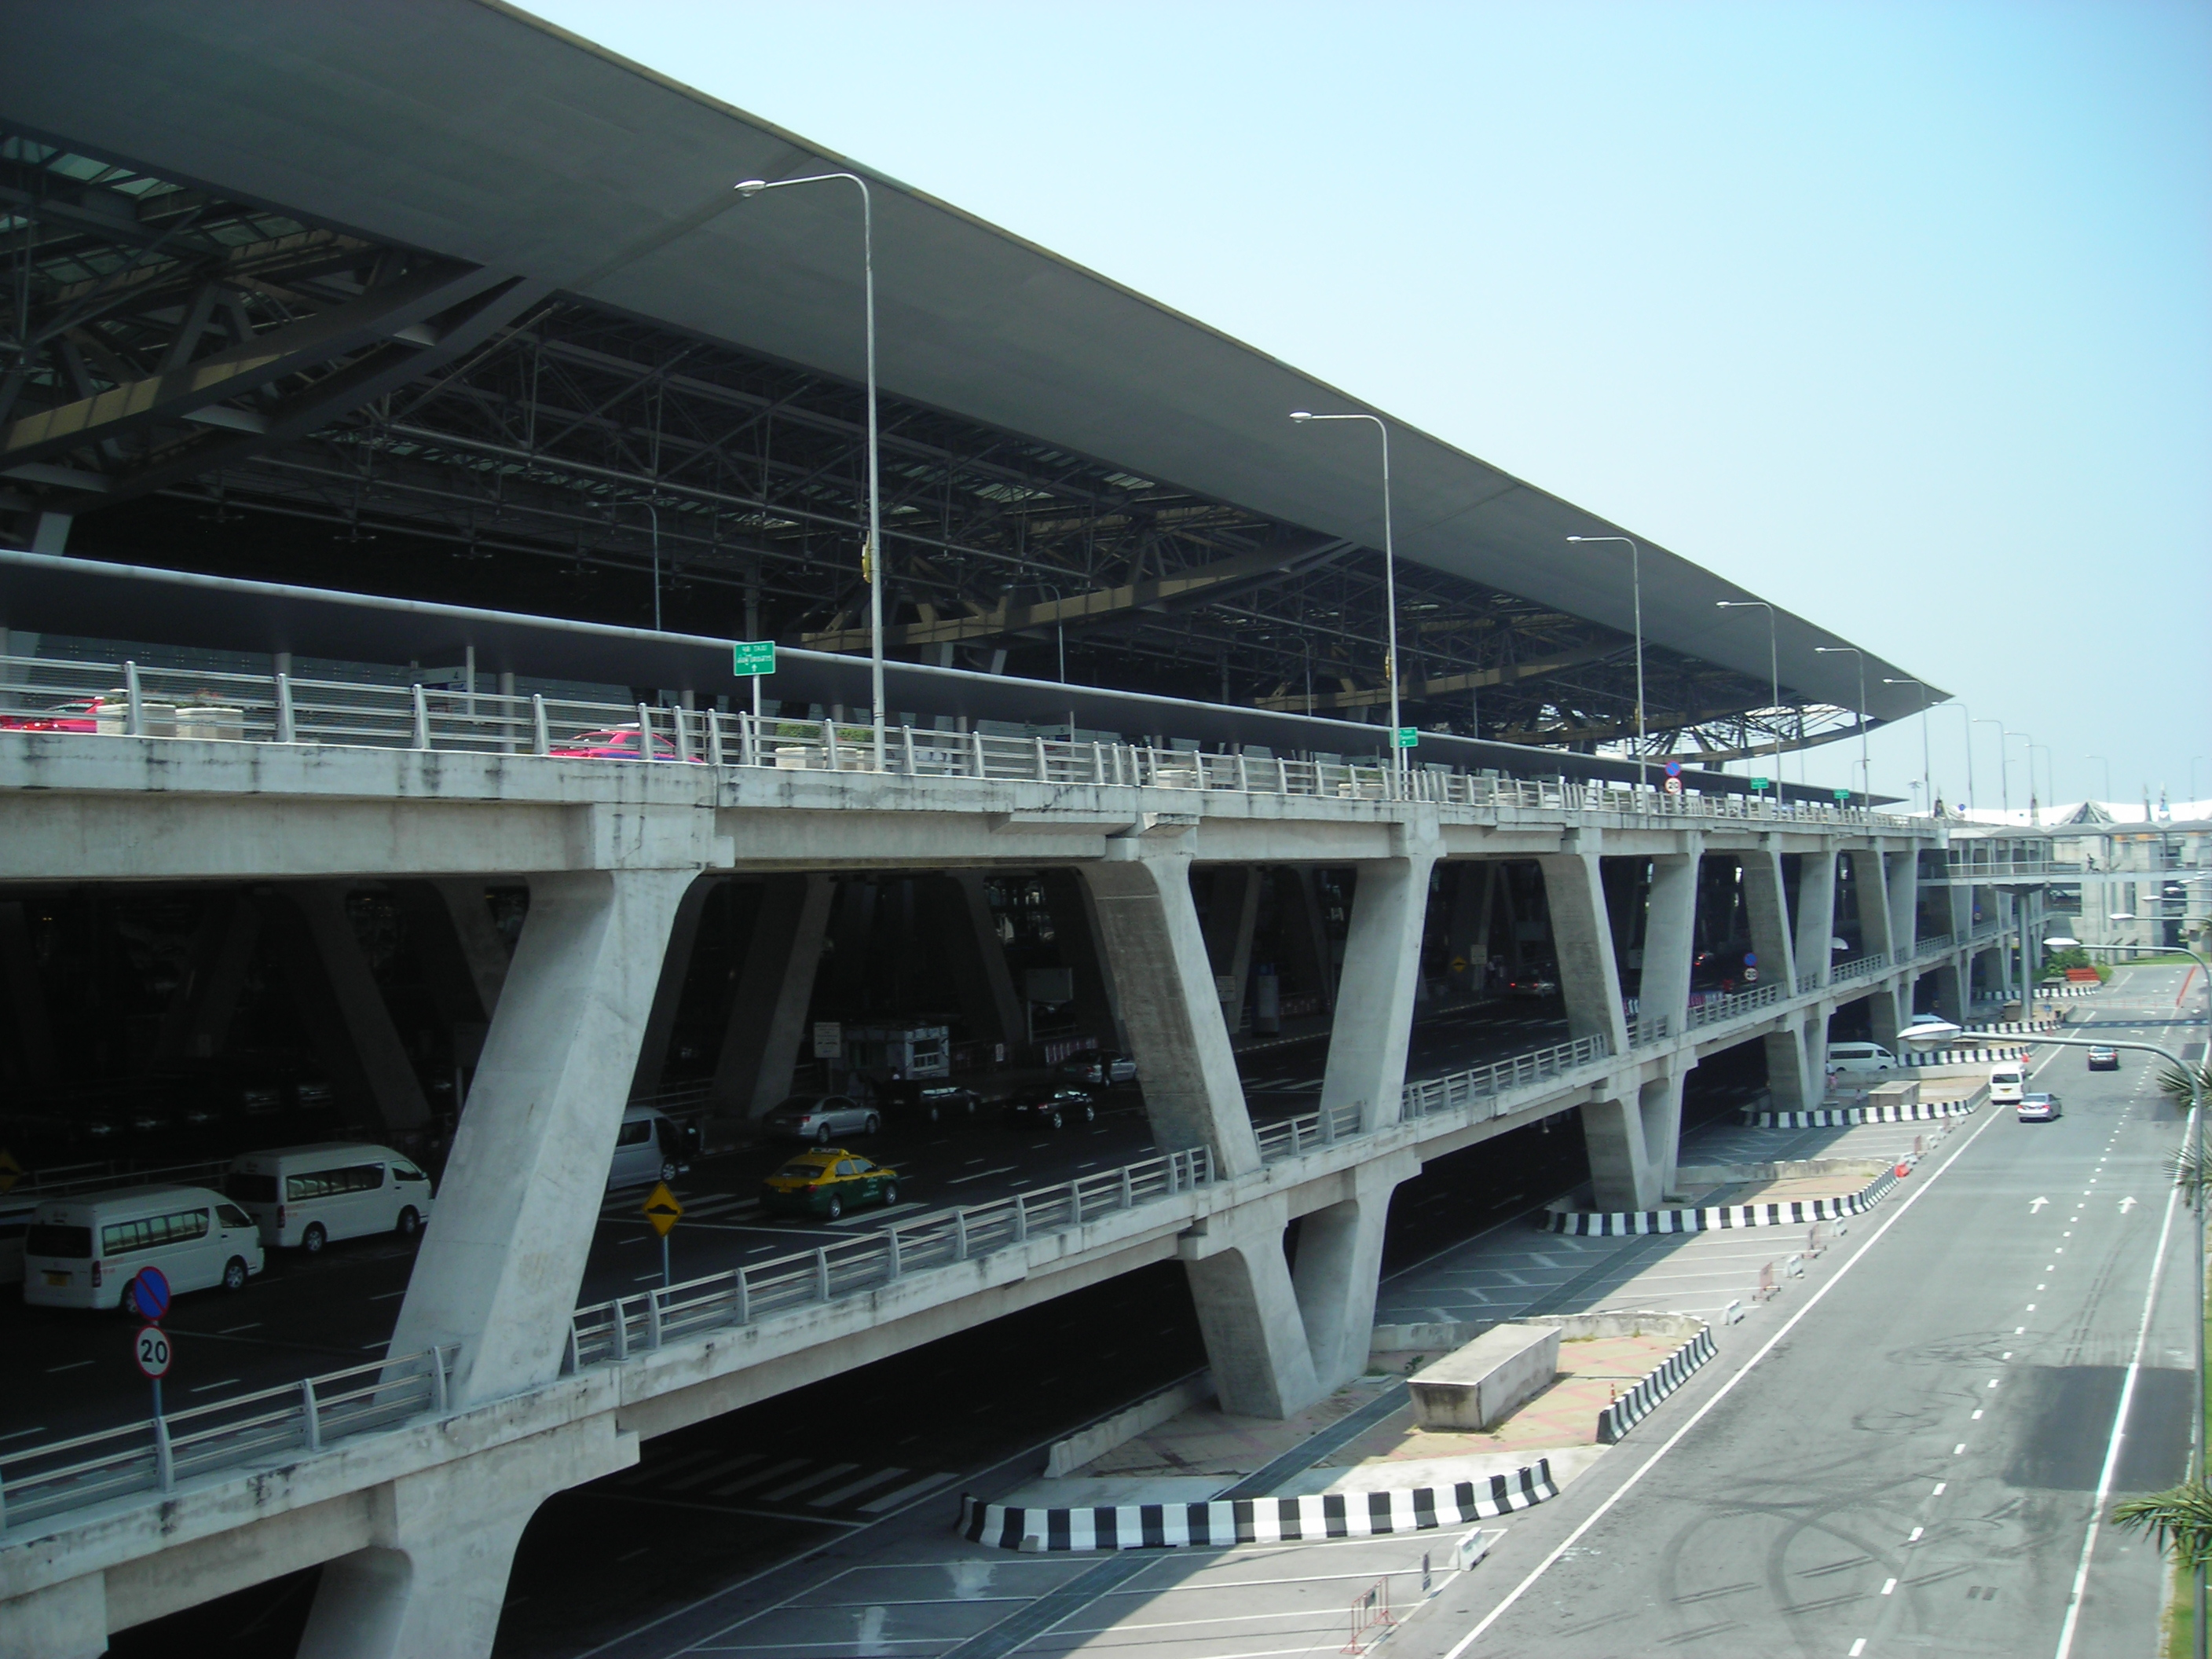 File:Suvarnabhumi Airport - main building seen from the PAX multi ...